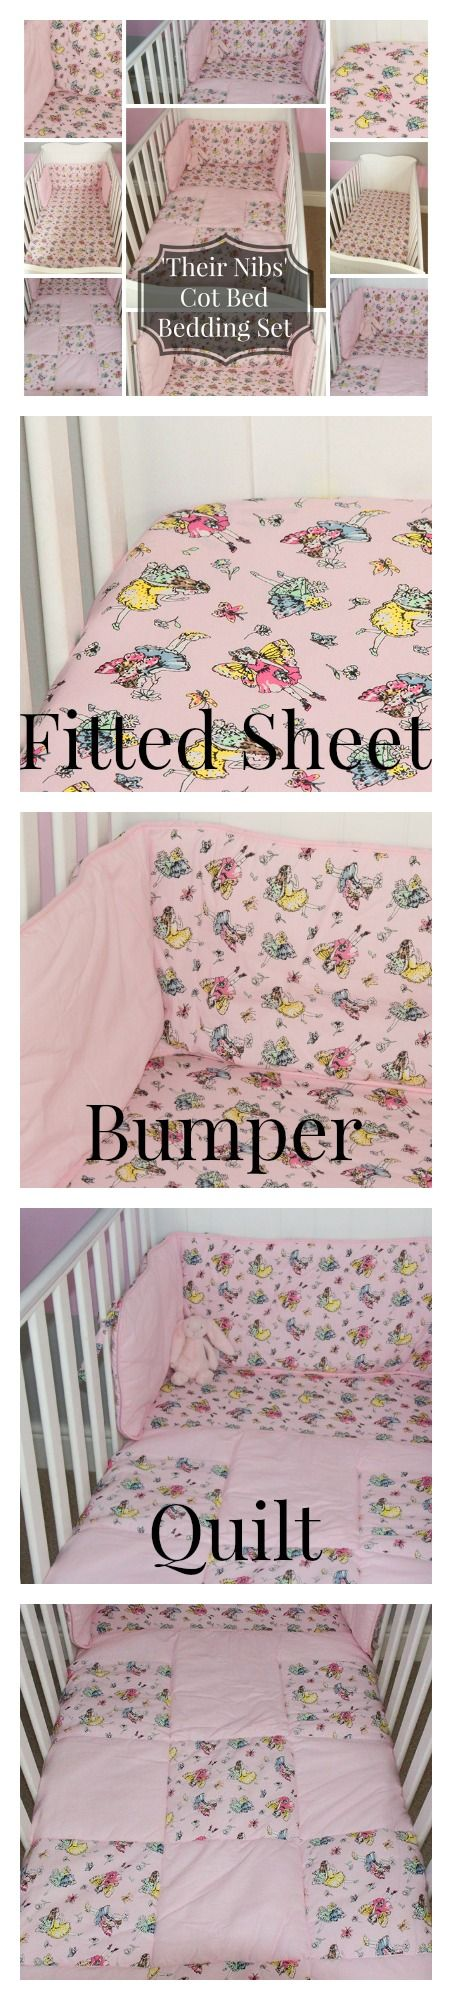 LOVE THIS! So cute! Baby Girl Cot Bedding Set Pink Fairy Design. Fitted Sheet, bumper & Quilt. From www.kidsonthecatwalk.co.uk by 'their nibs london' boys version also available. #VintageDesign #Fairy #Baby Bedding bundle